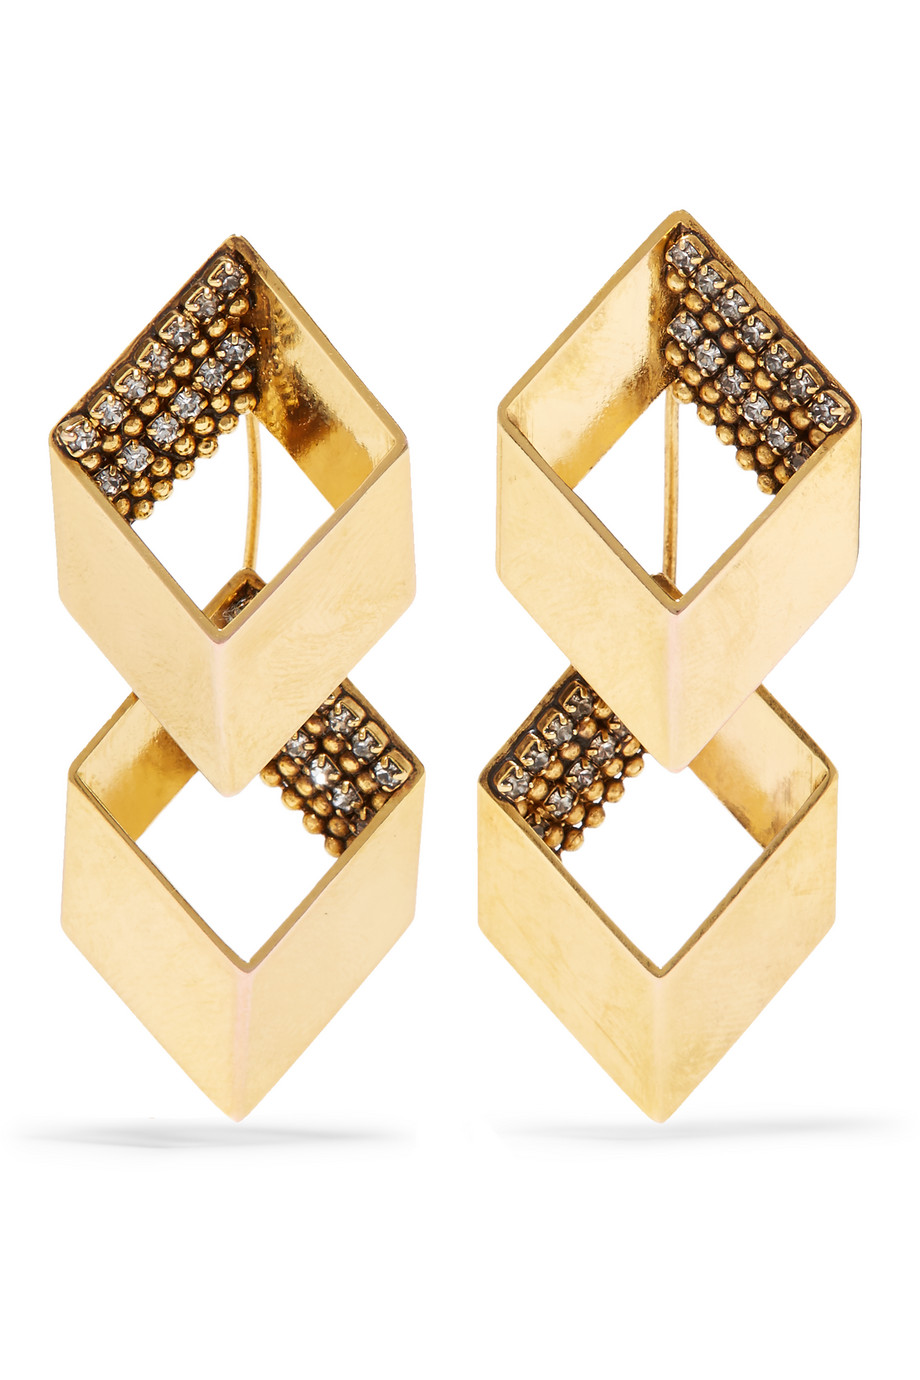 Erickson Beamon Smoking Jacket Gold-Plated Swarovski Crystal Earrings, Women's